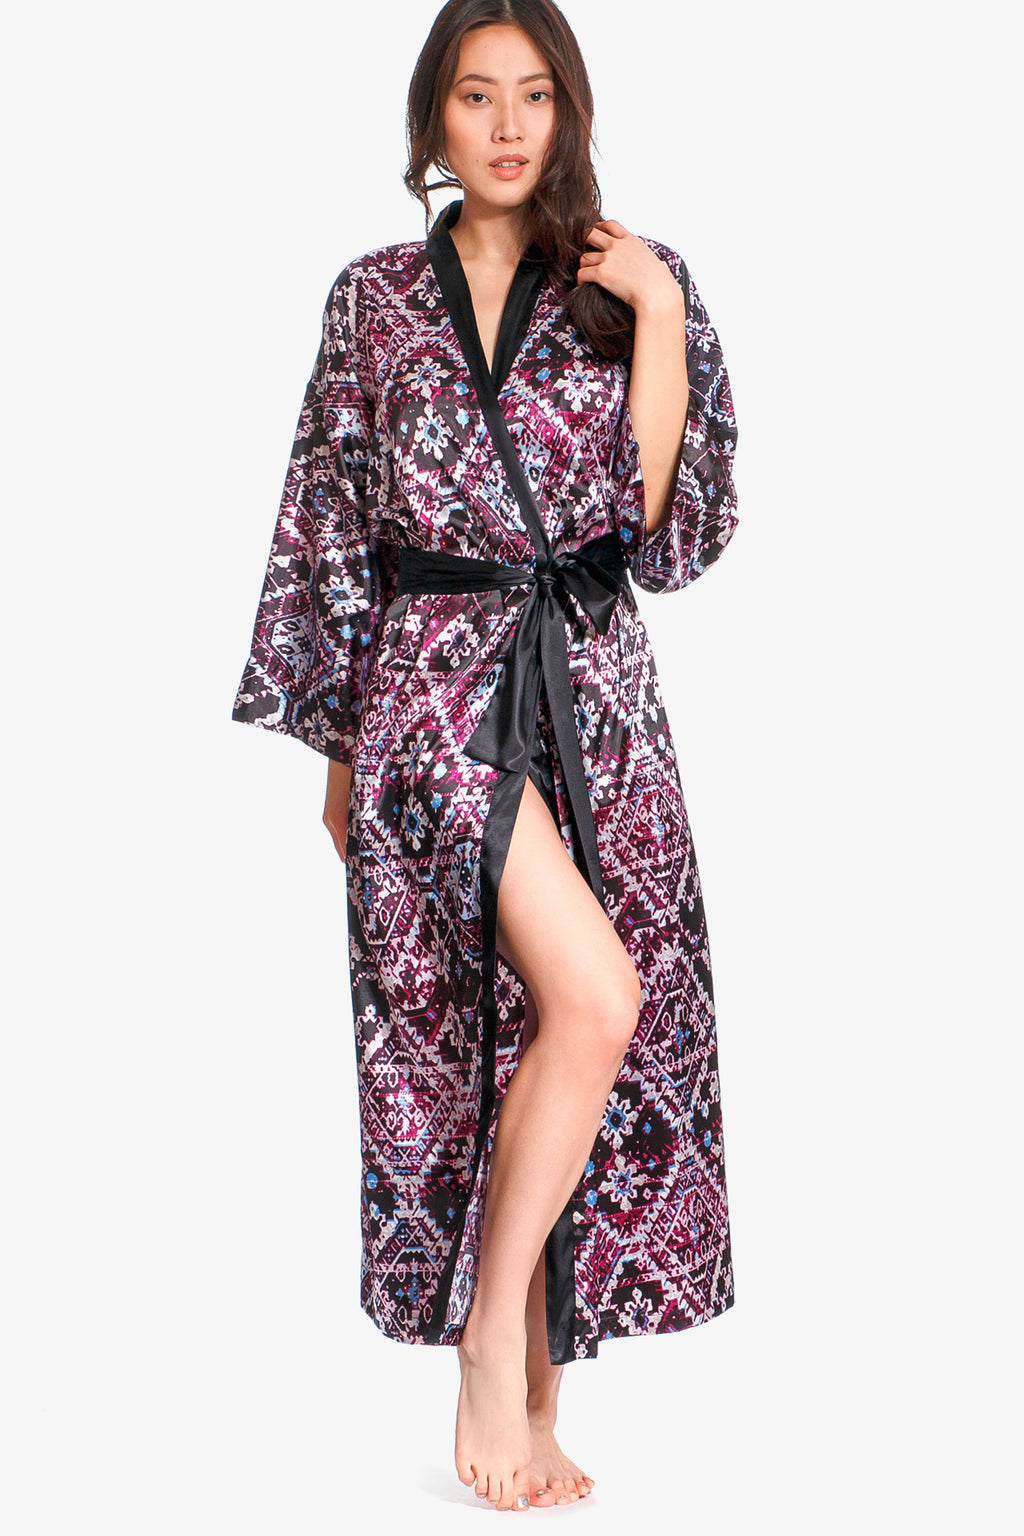 The Patterned Chic Kimono